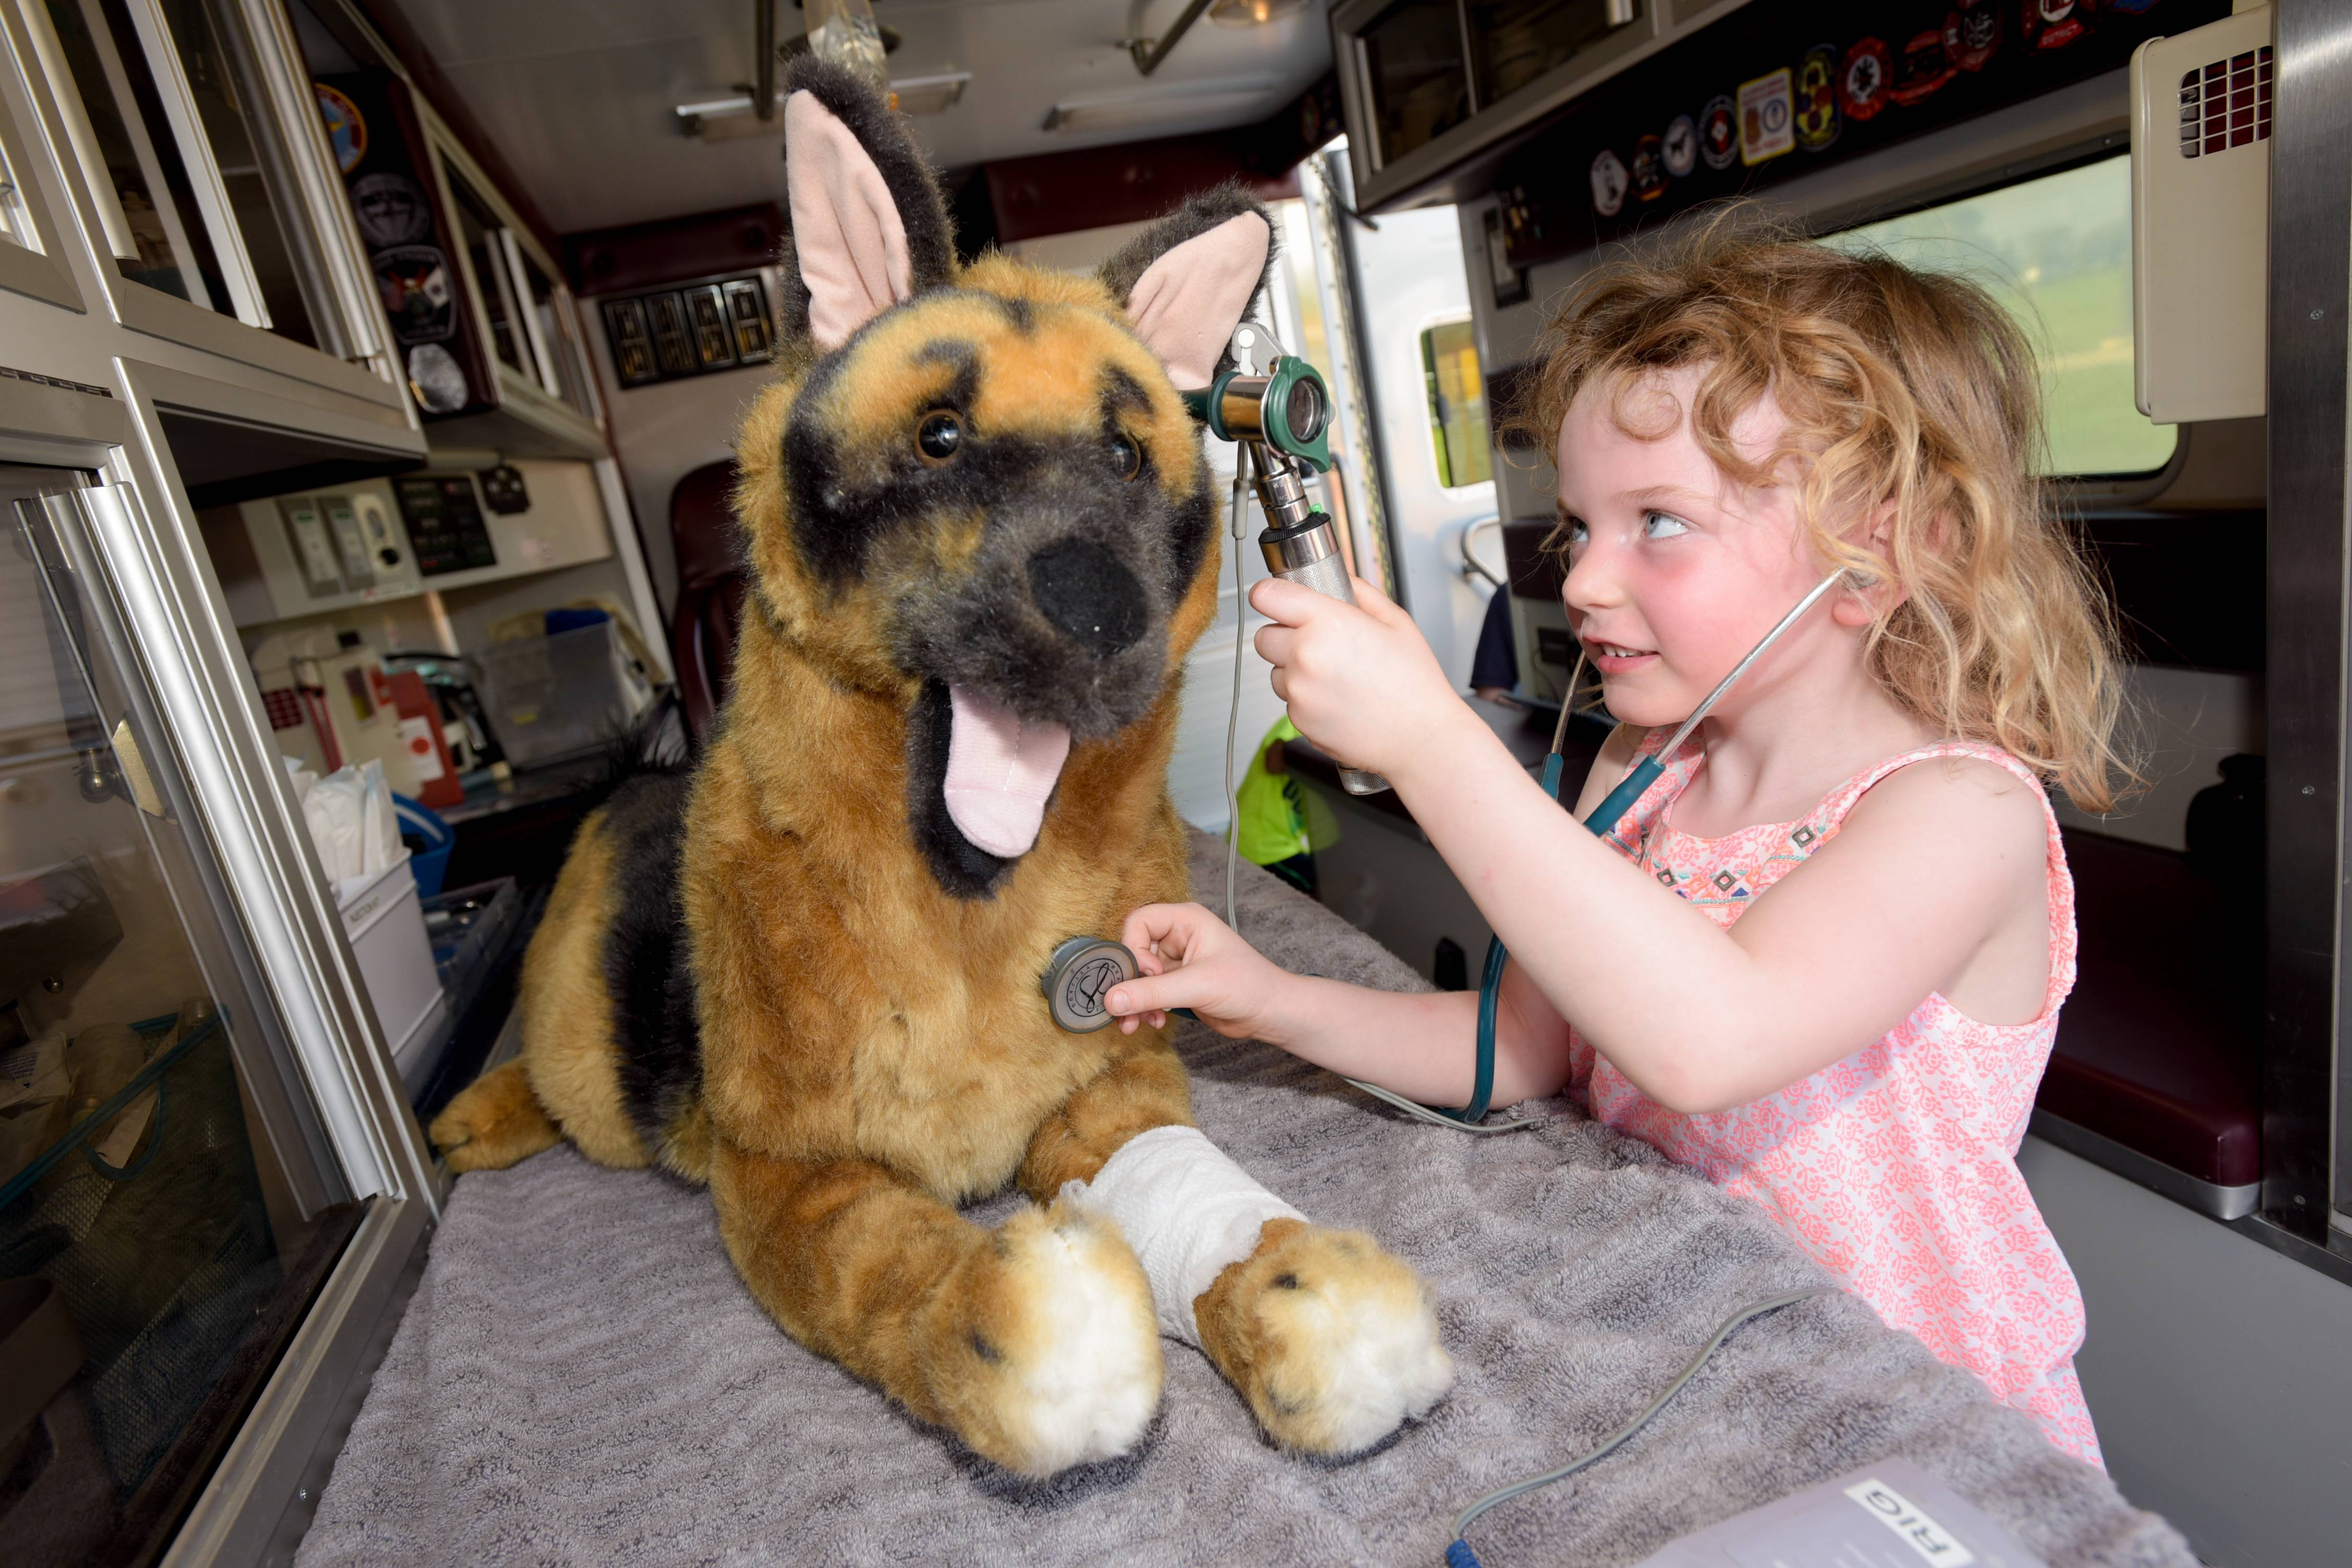 Sophia Conrad, 4 of Naperville gives an examination to a stuffed dog Tuesday in the Partners and Paws Veterinary Services animal ambulance during the National Night Out event at Benedictine University in Lisle.